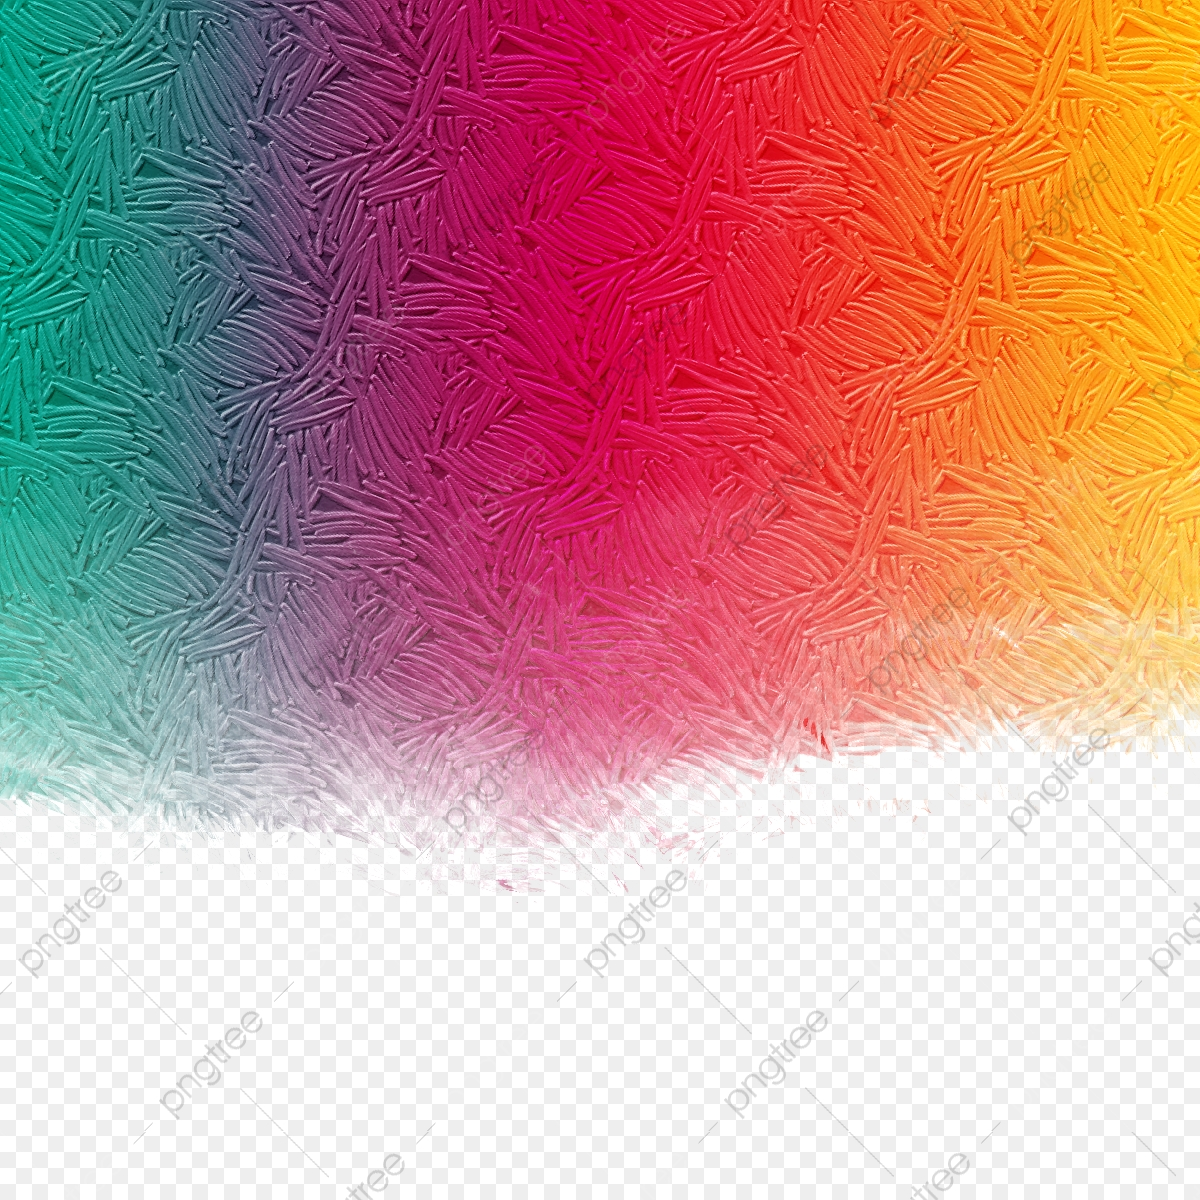 Background Art Png, Vector, PSD, And Clipart With Transparent Background For  Free Download | Pngtree